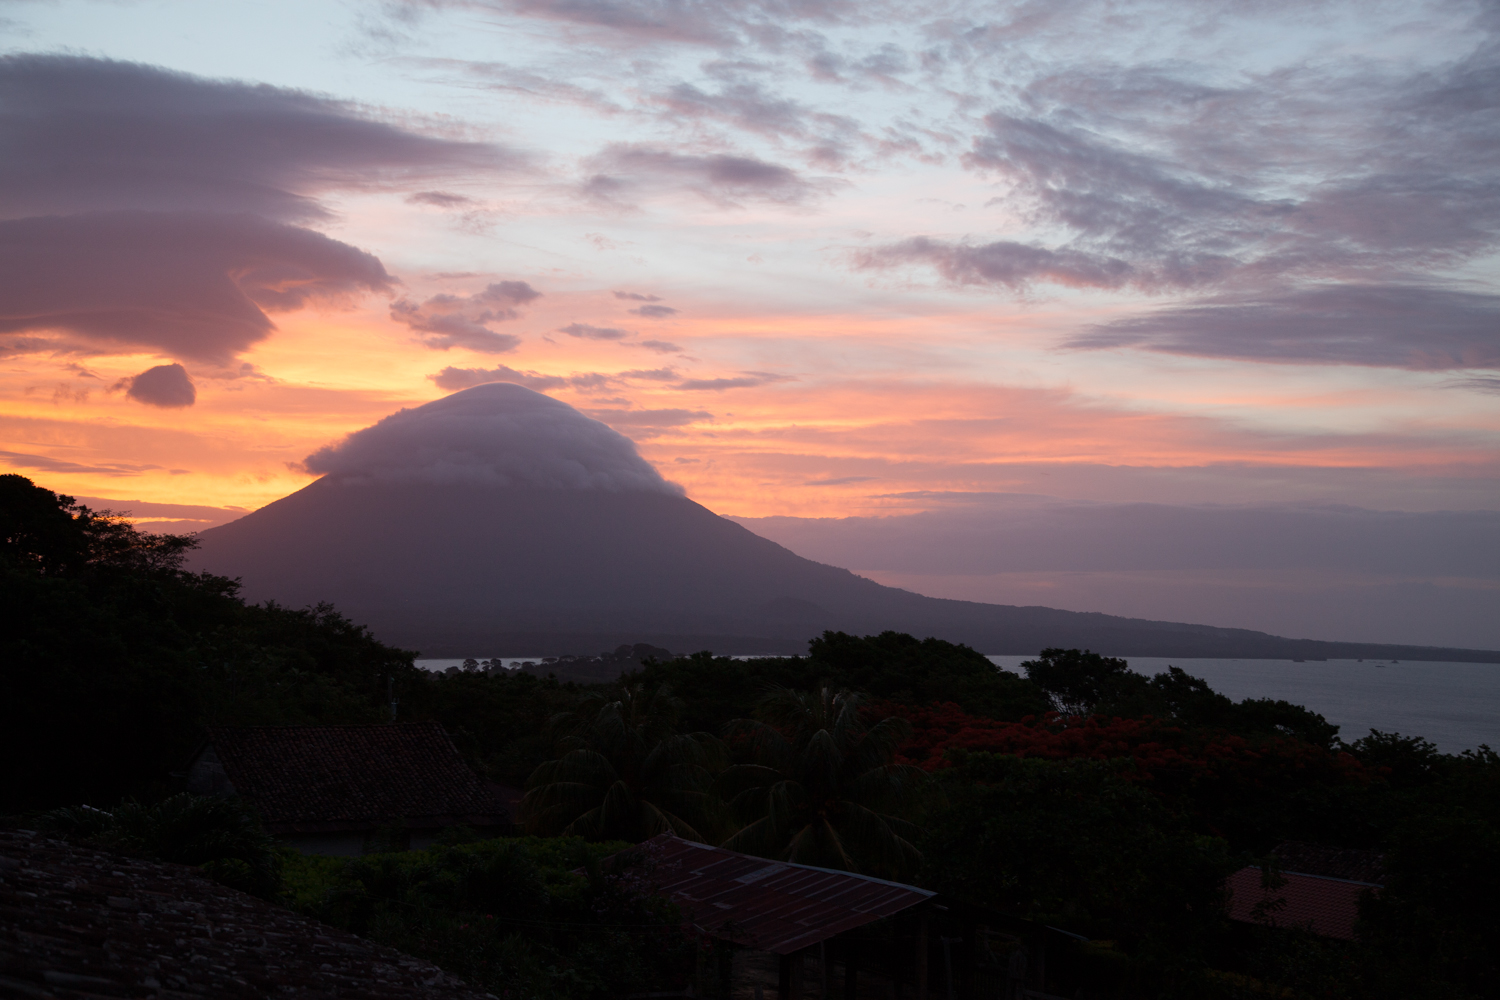 Sunset view from Finca de Magdalena at the base of Volcano Madera